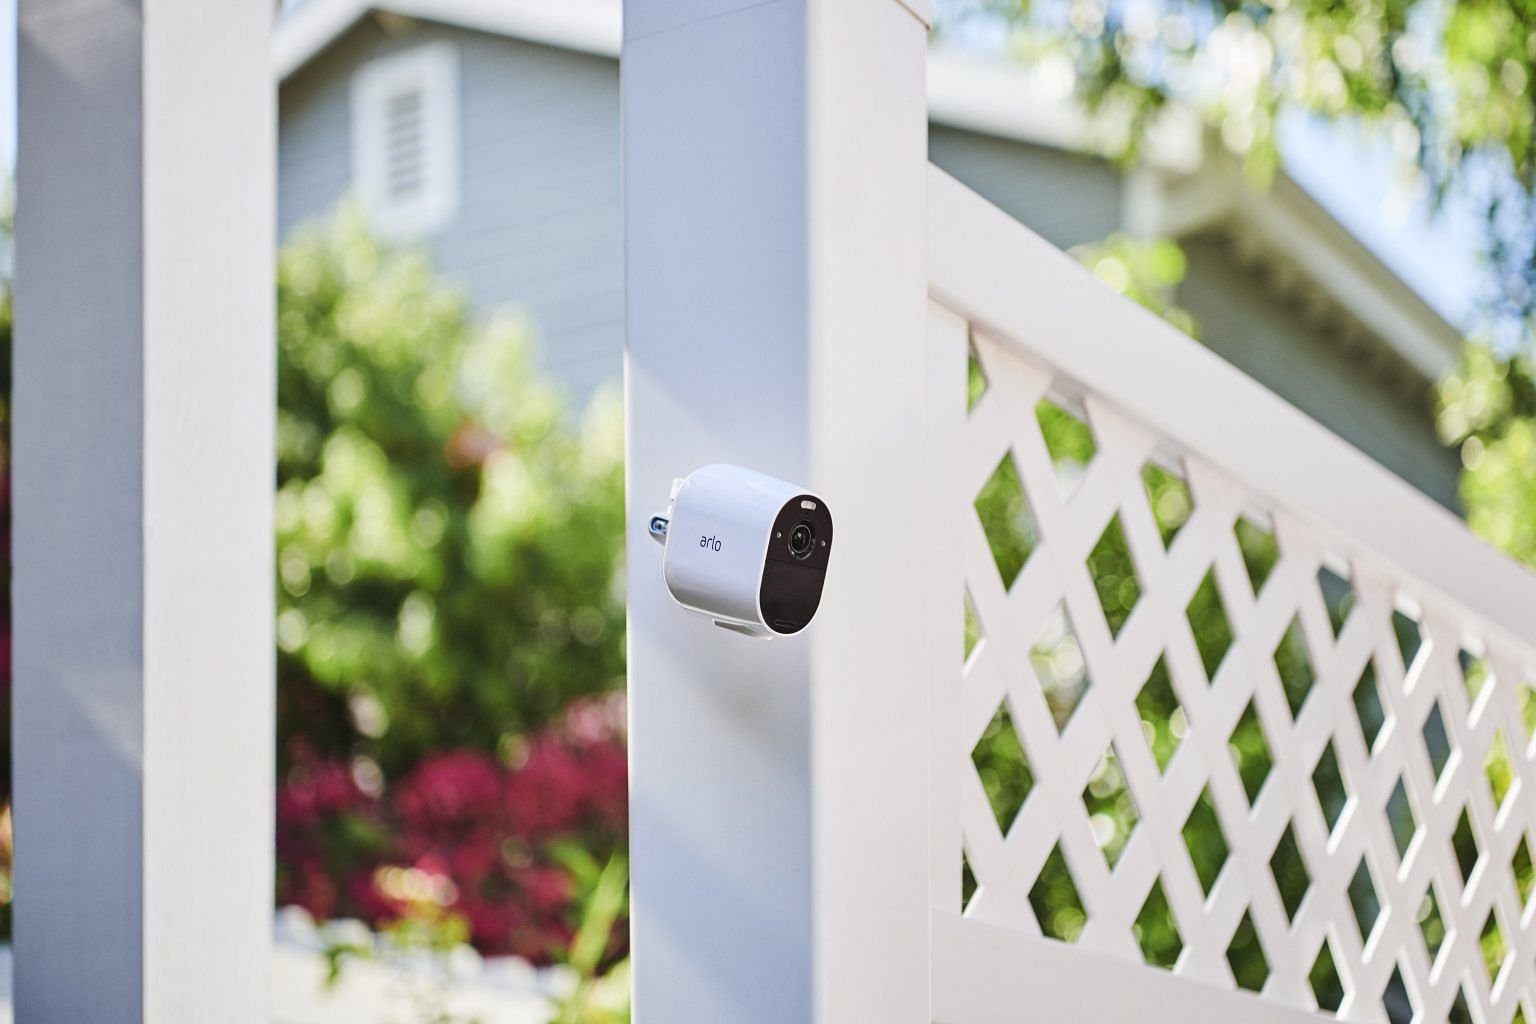 Want to Install A Security Camera? 4 Things To Know Before Getting One